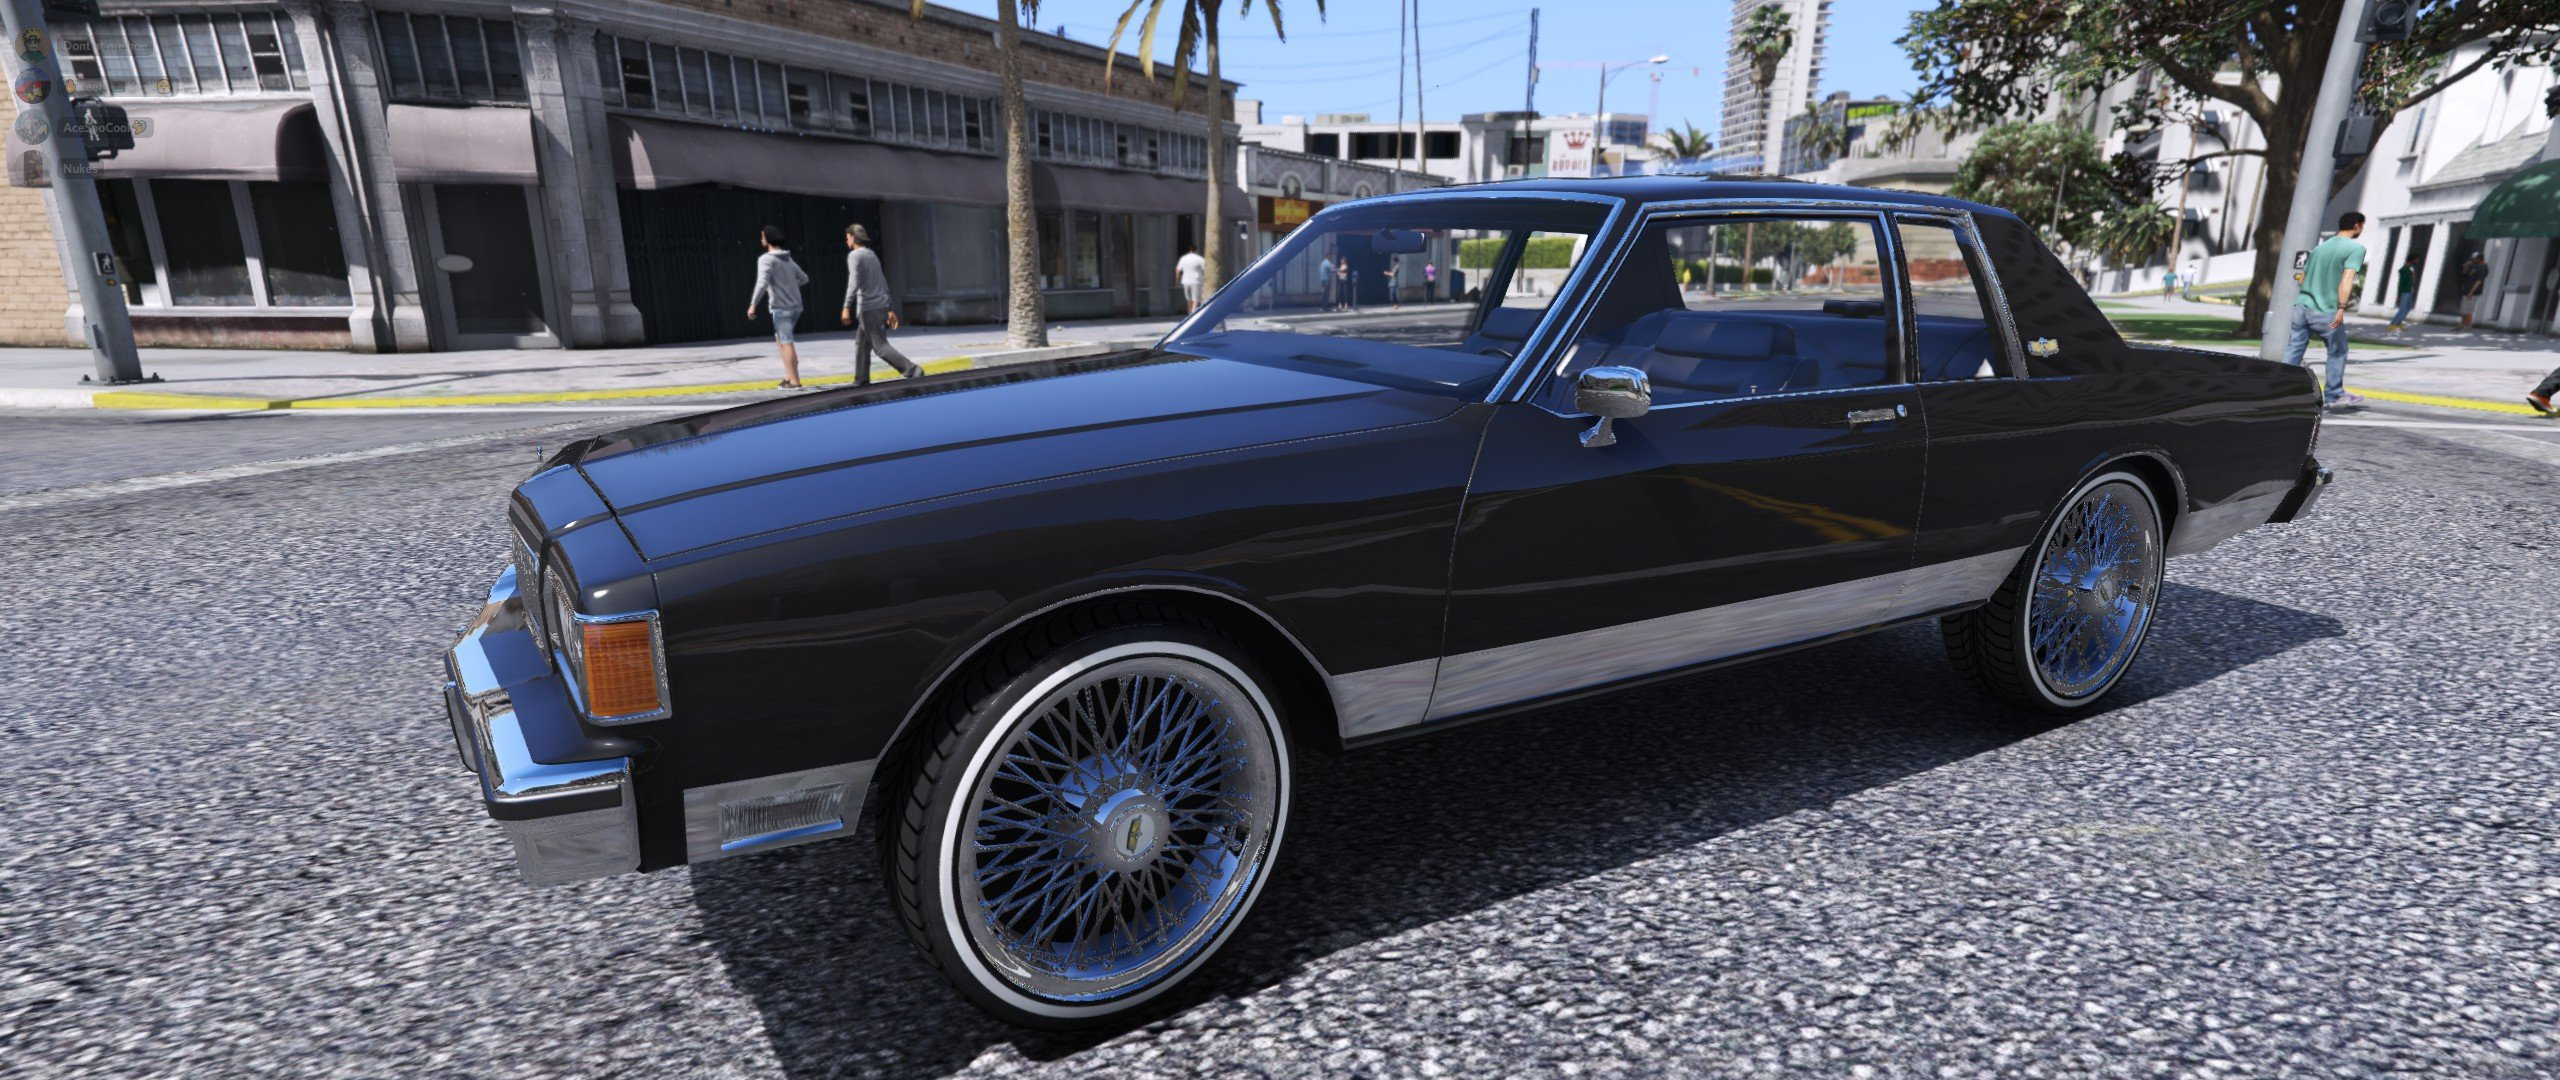 1989 2 door box chevy caprice it might be don 39 s i dont know gta5. Black Bedroom Furniture Sets. Home Design Ideas